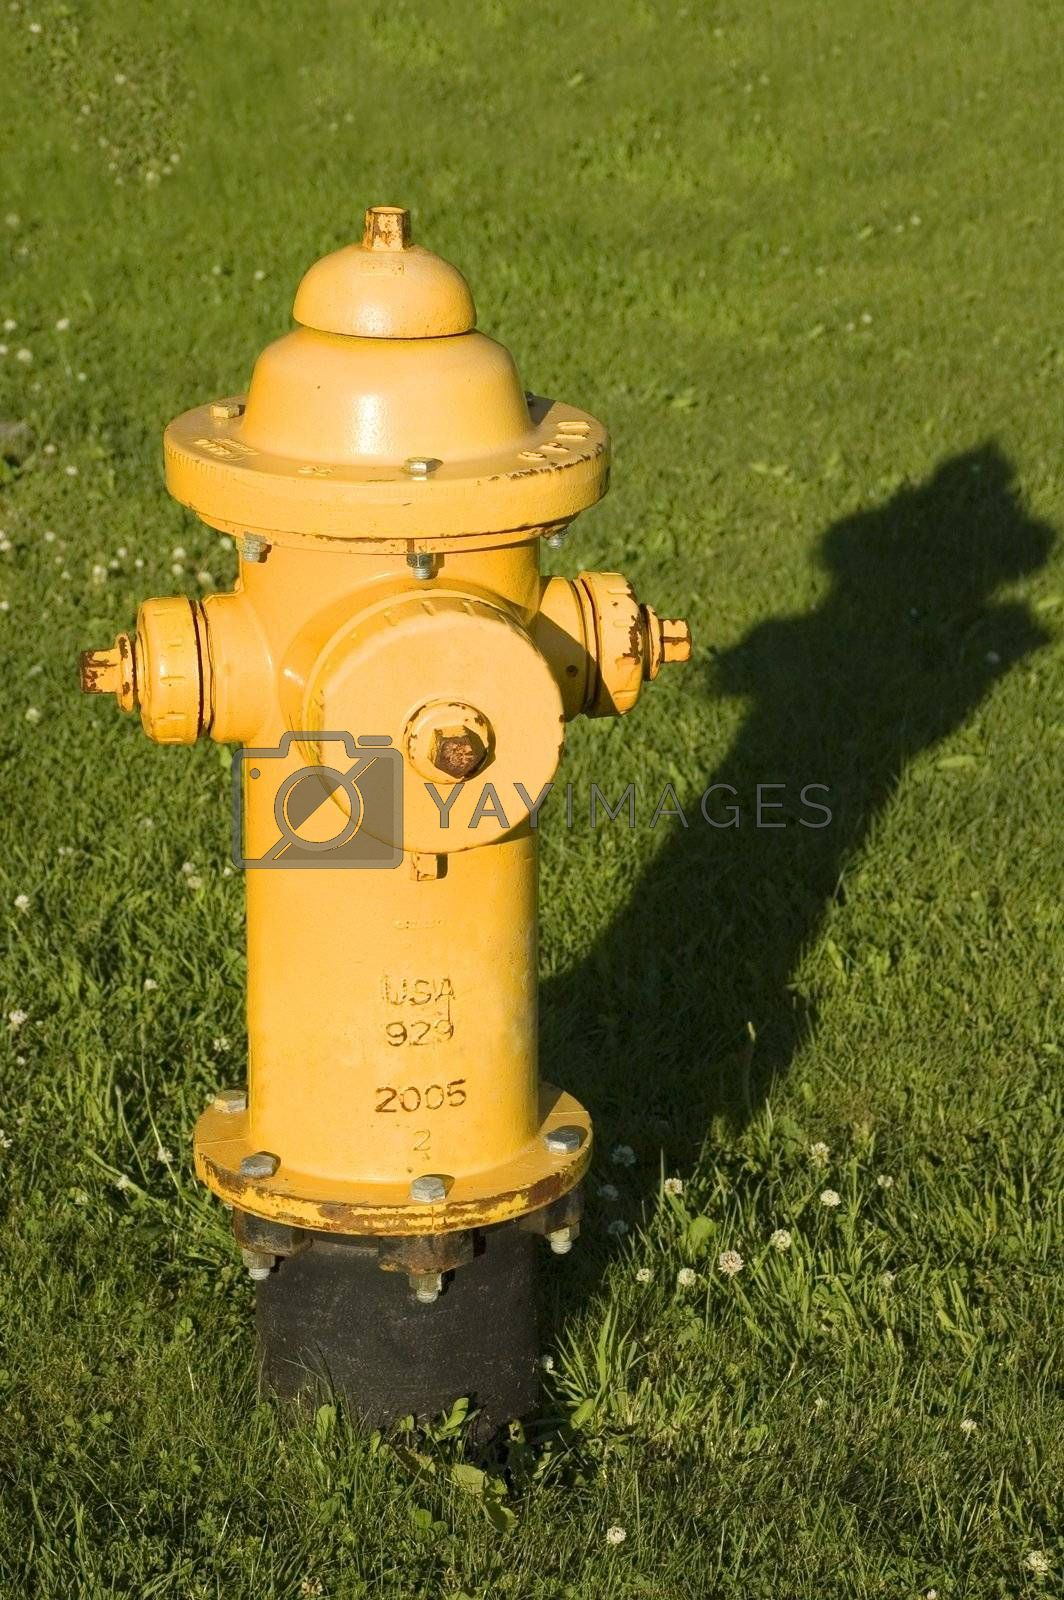 A yellow fire hydrant in the grass with a long shadow in the afternoon.